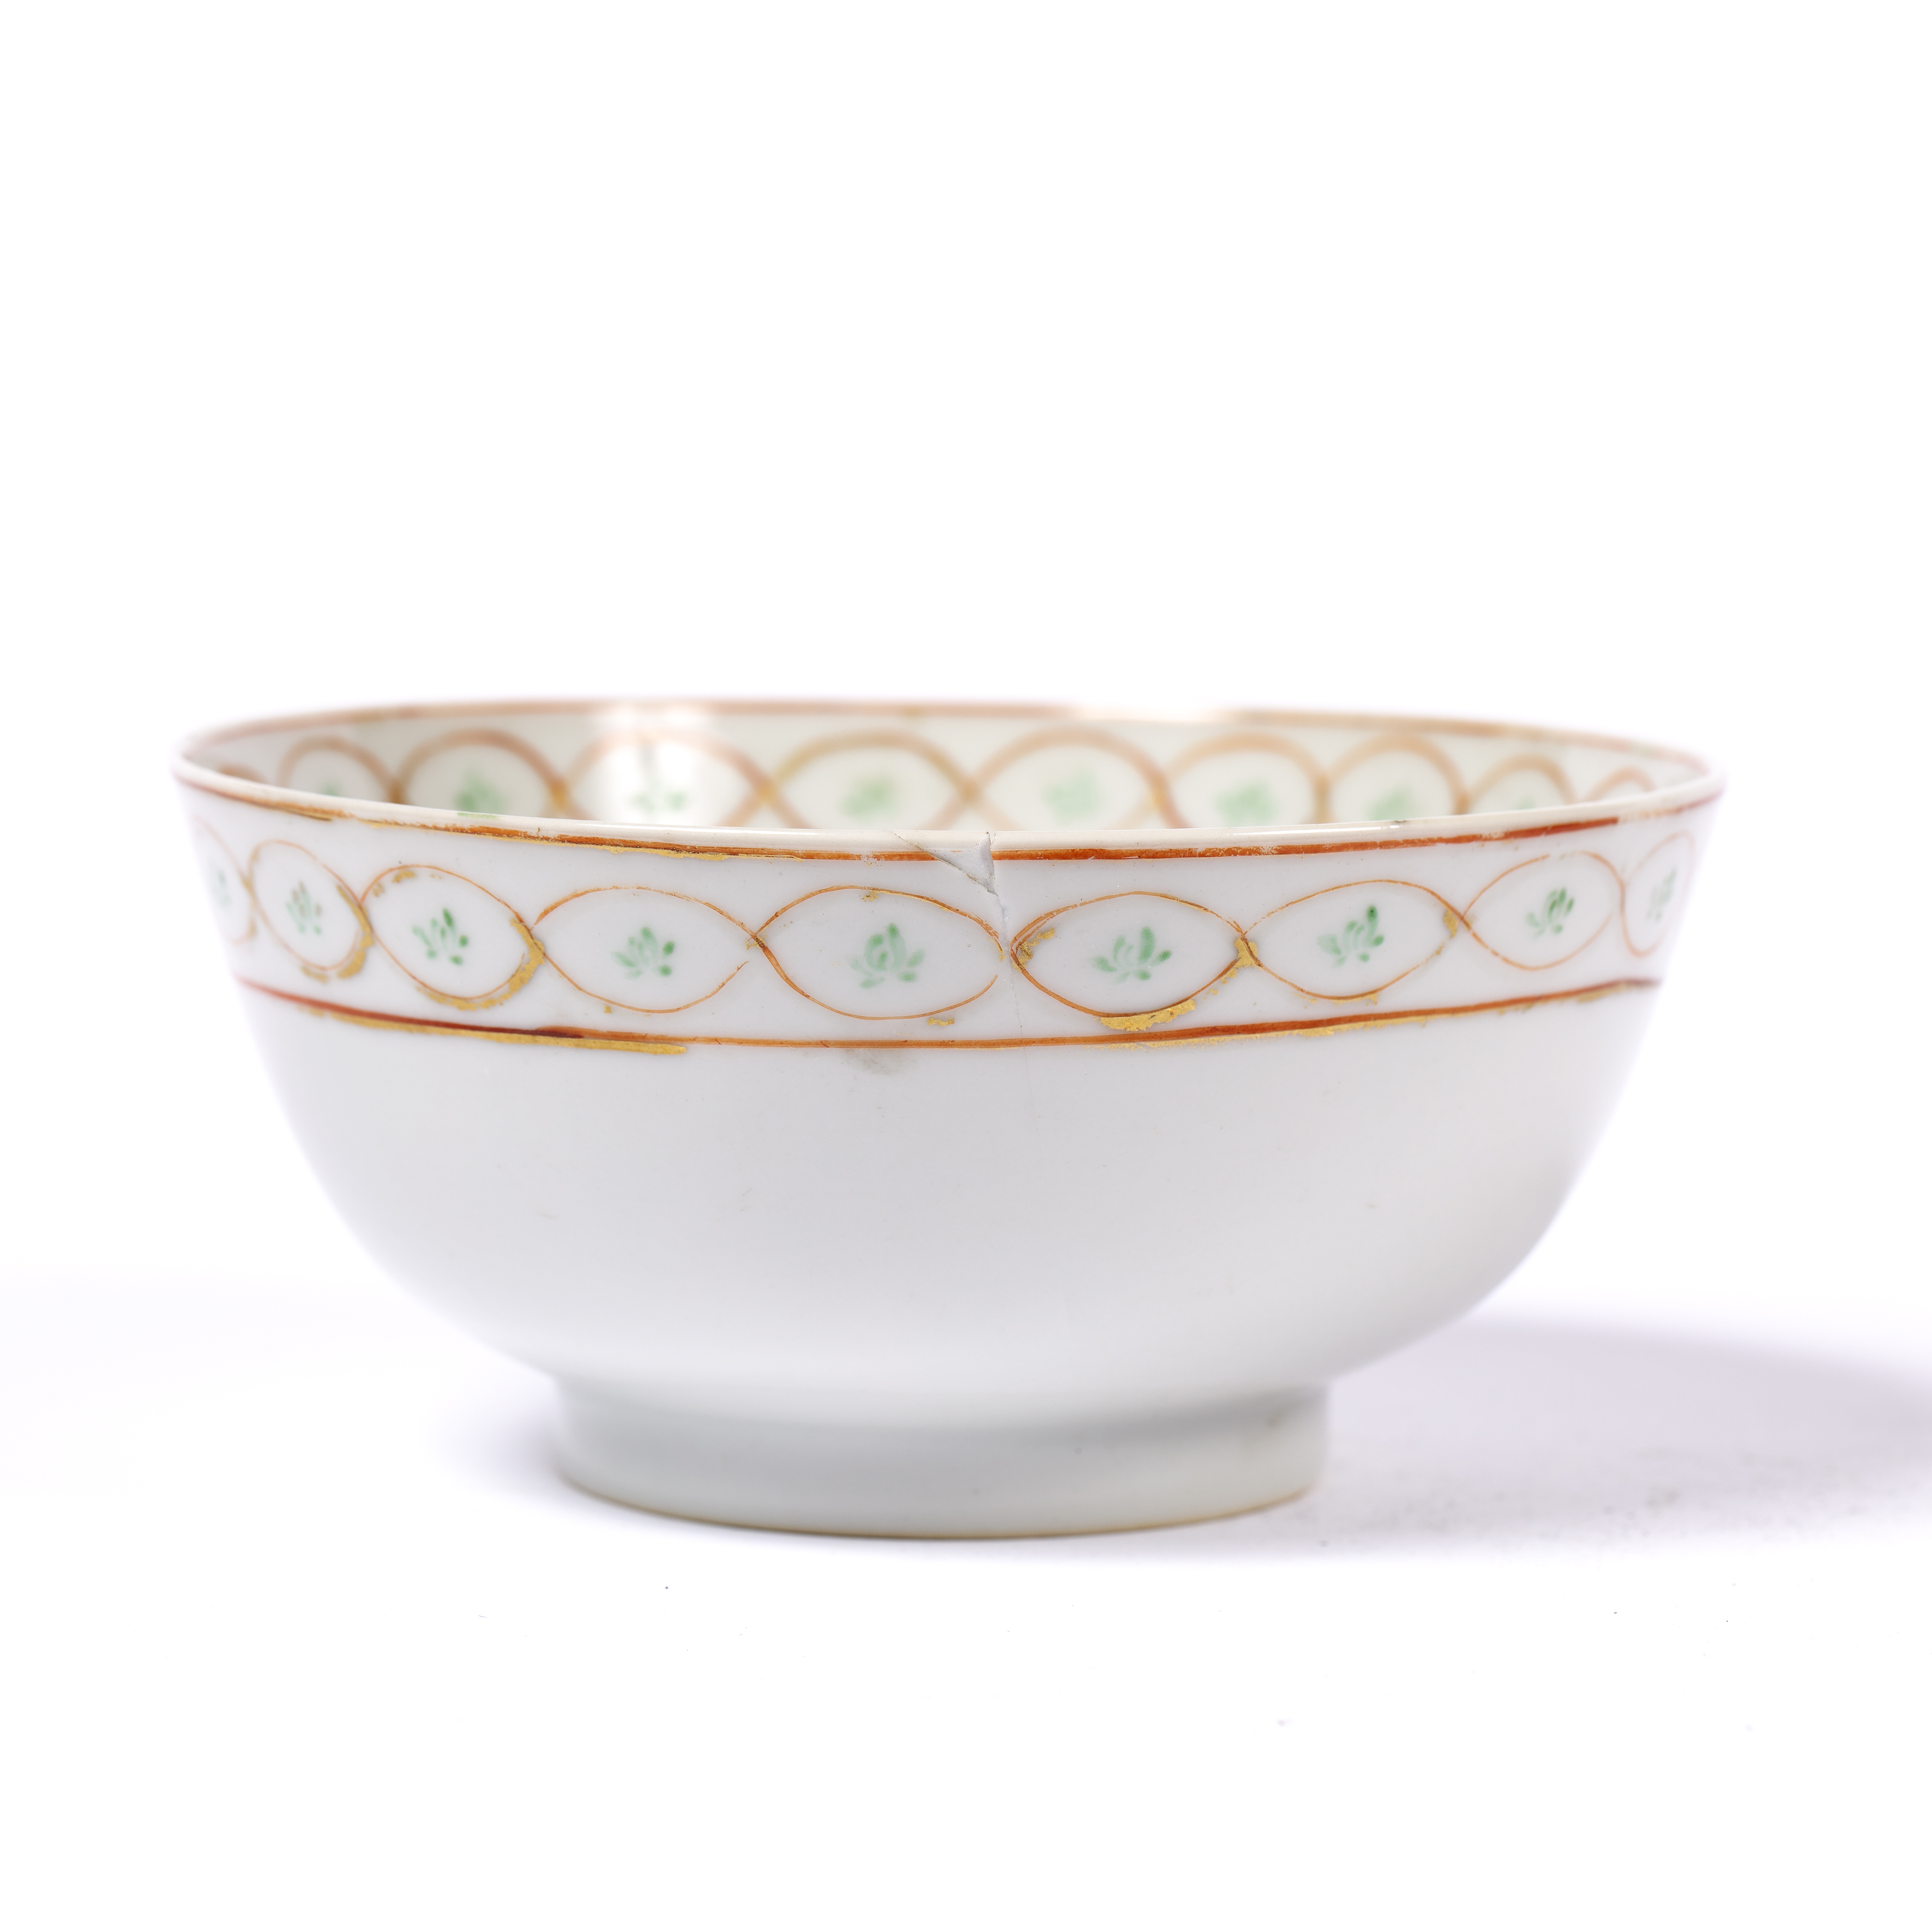 Porcelain sweetmeat dish Chinese, Qianlong of circular form and greenish celadon-type glaze, with - Image 2 of 4